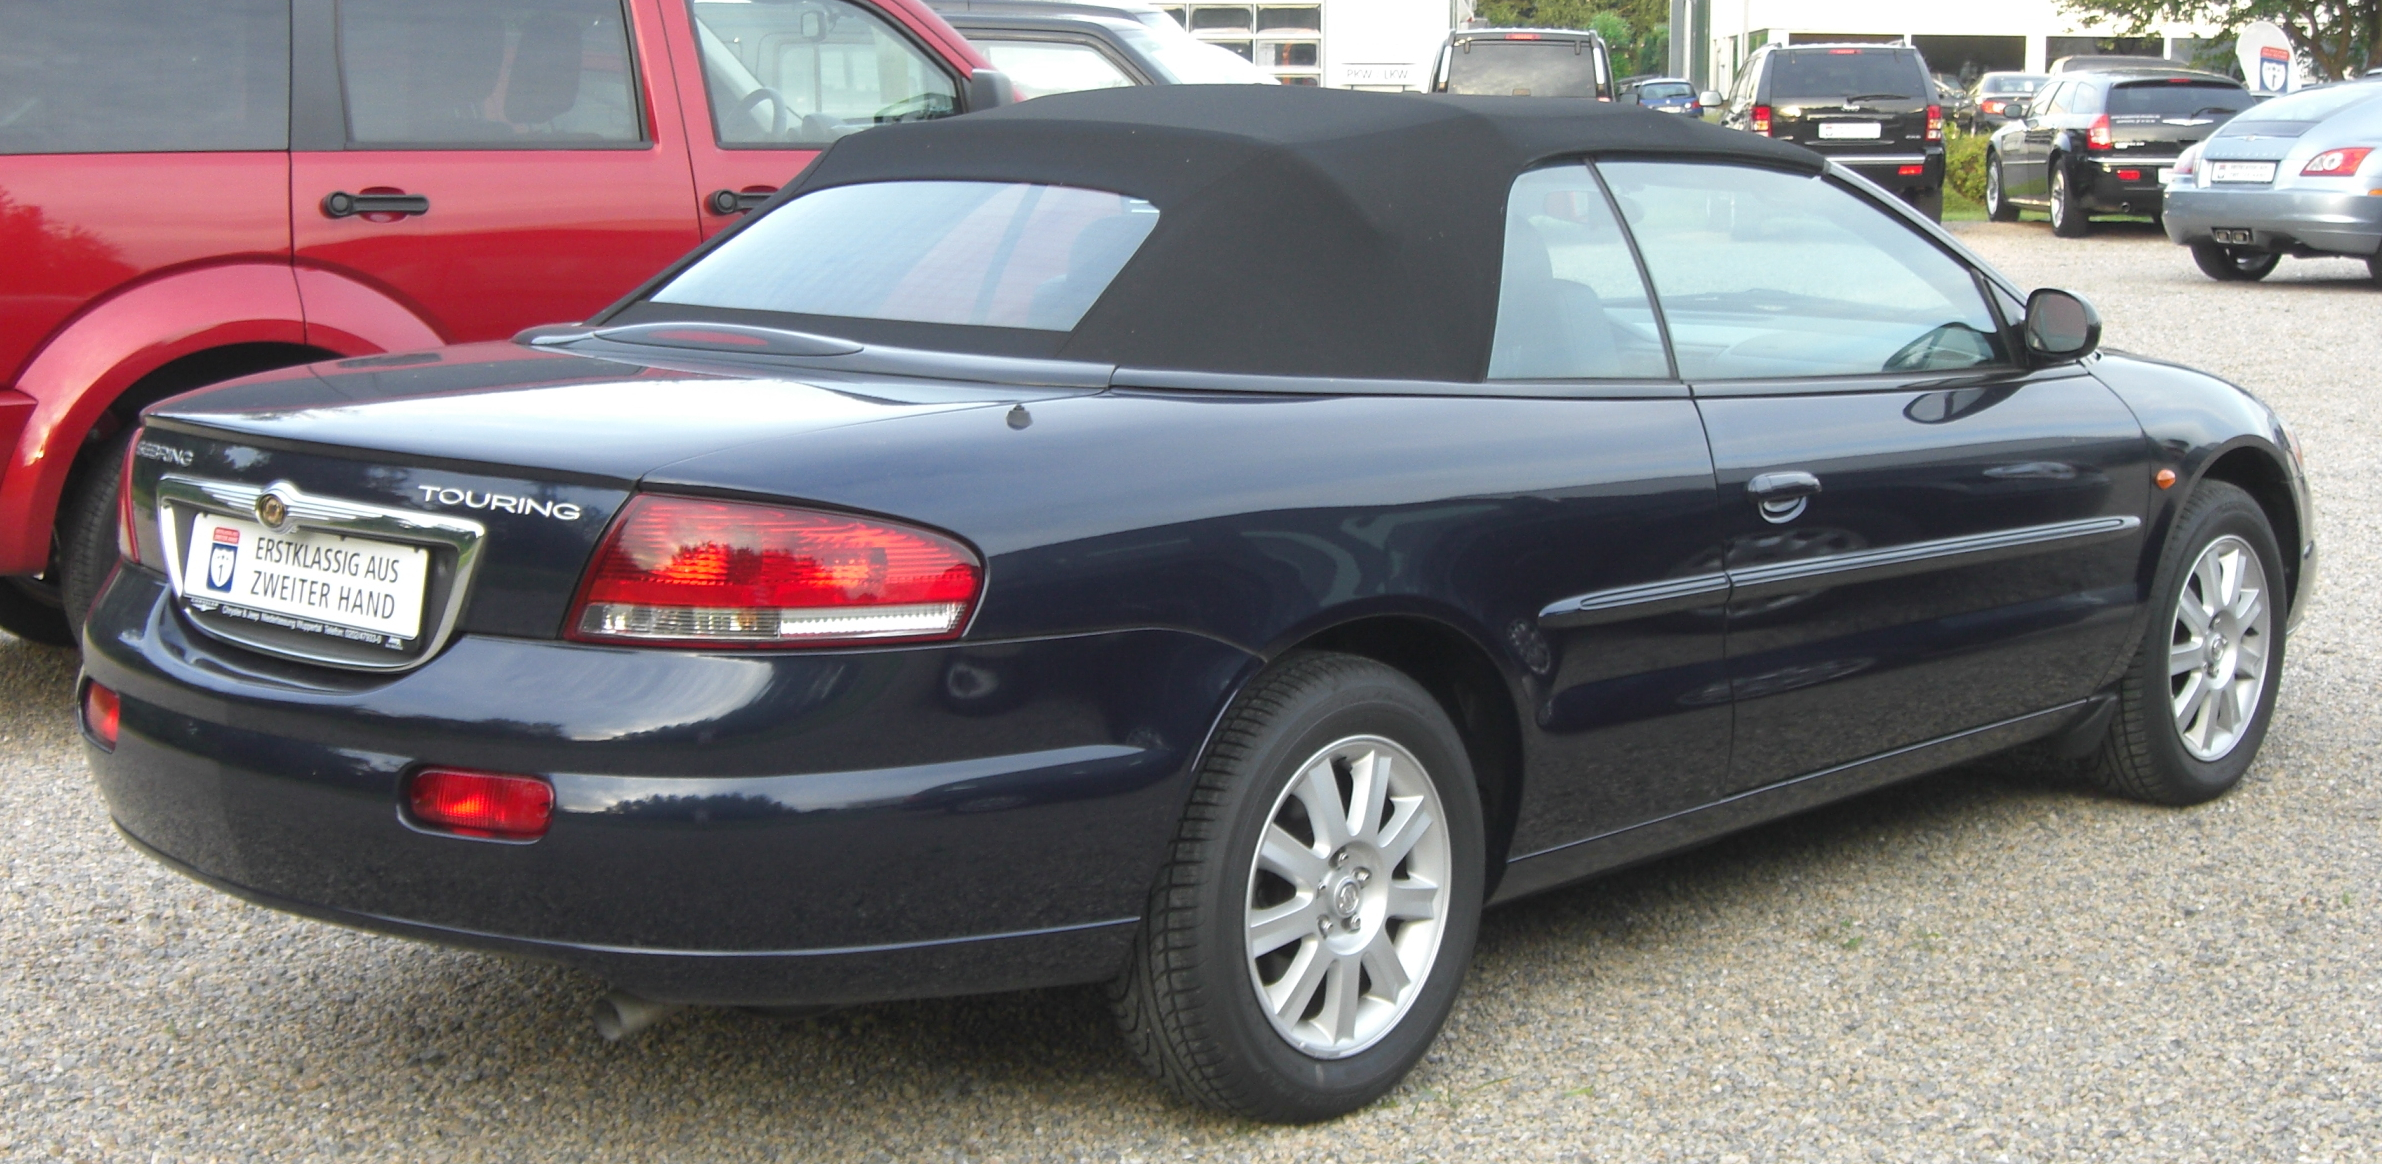 file chrysler sebring cabriolet limited wikimedia commons. Black Bedroom Furniture Sets. Home Design Ideas